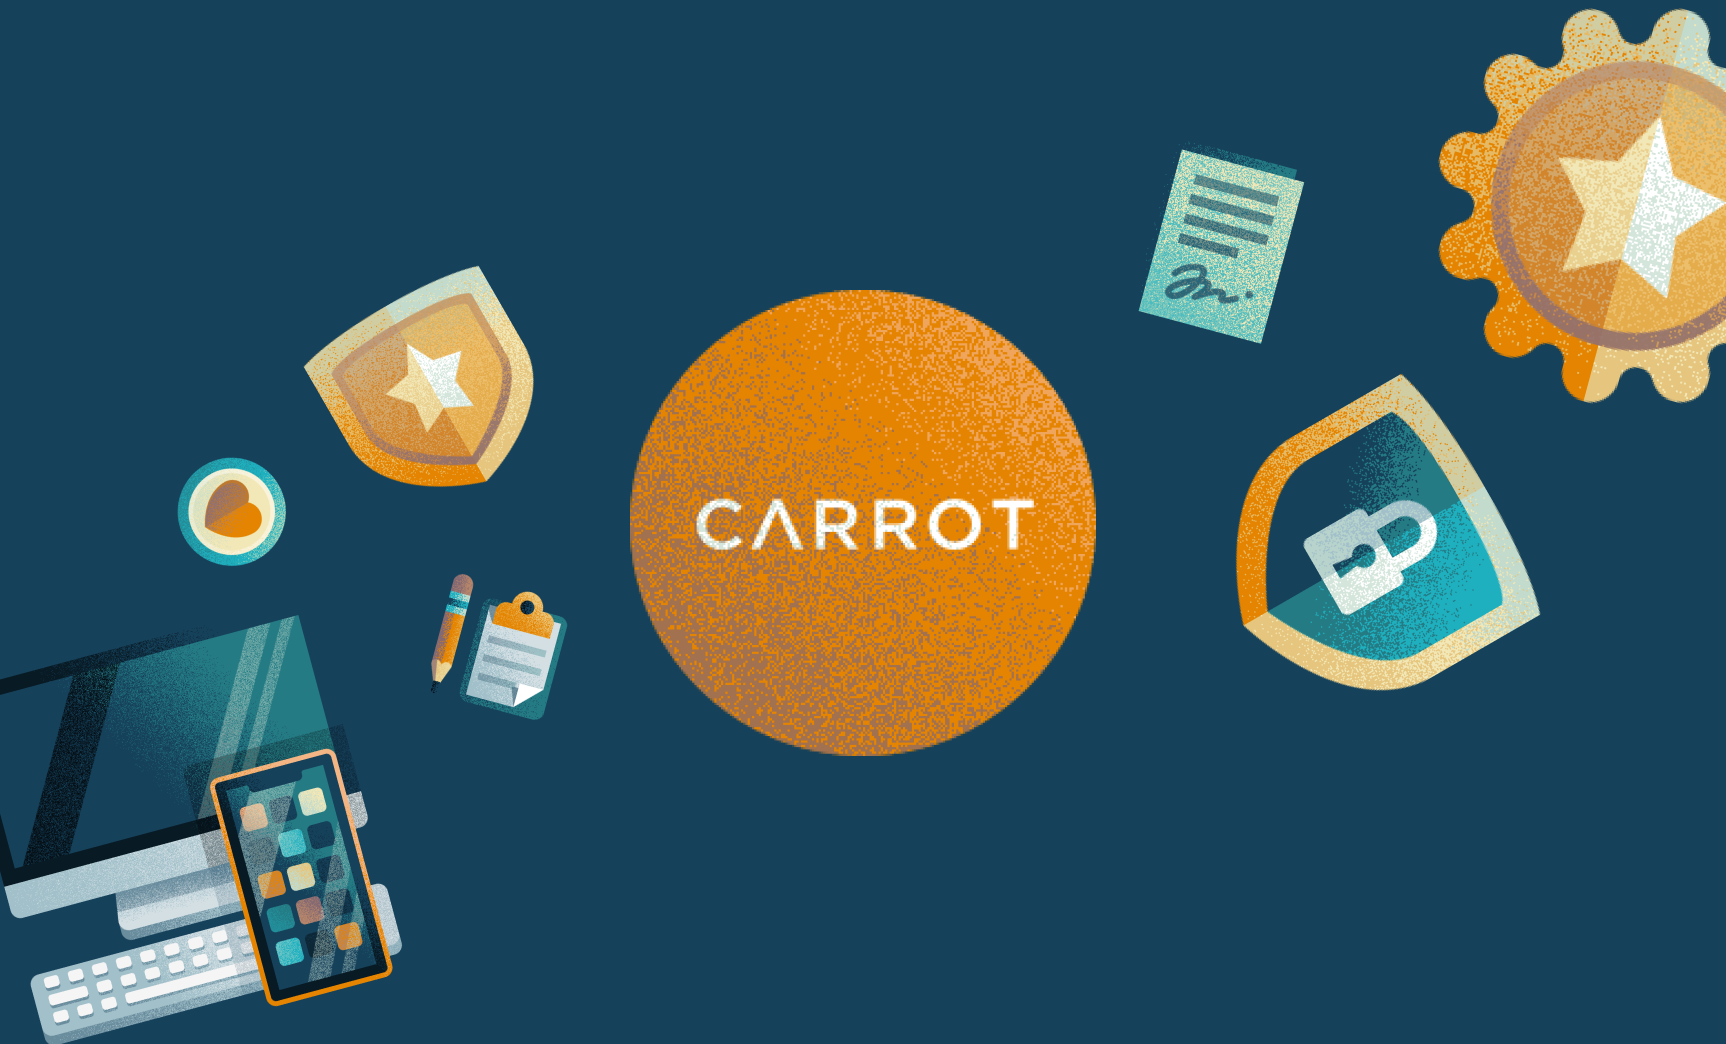 Carrot completes SOC 2 Type II and HIPAA audits